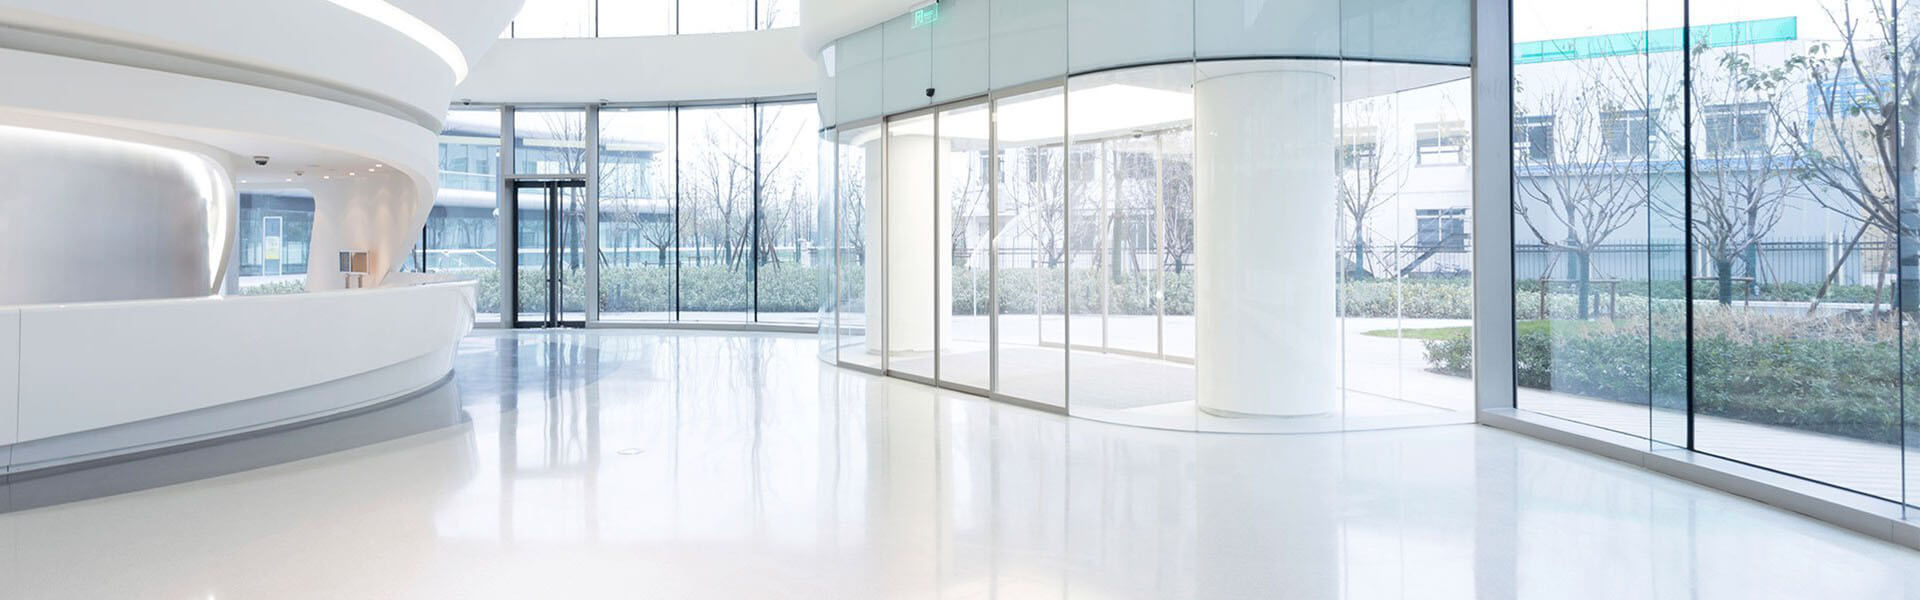 Cleaning Services, Janitorial Services and Commercial Cleaning Services